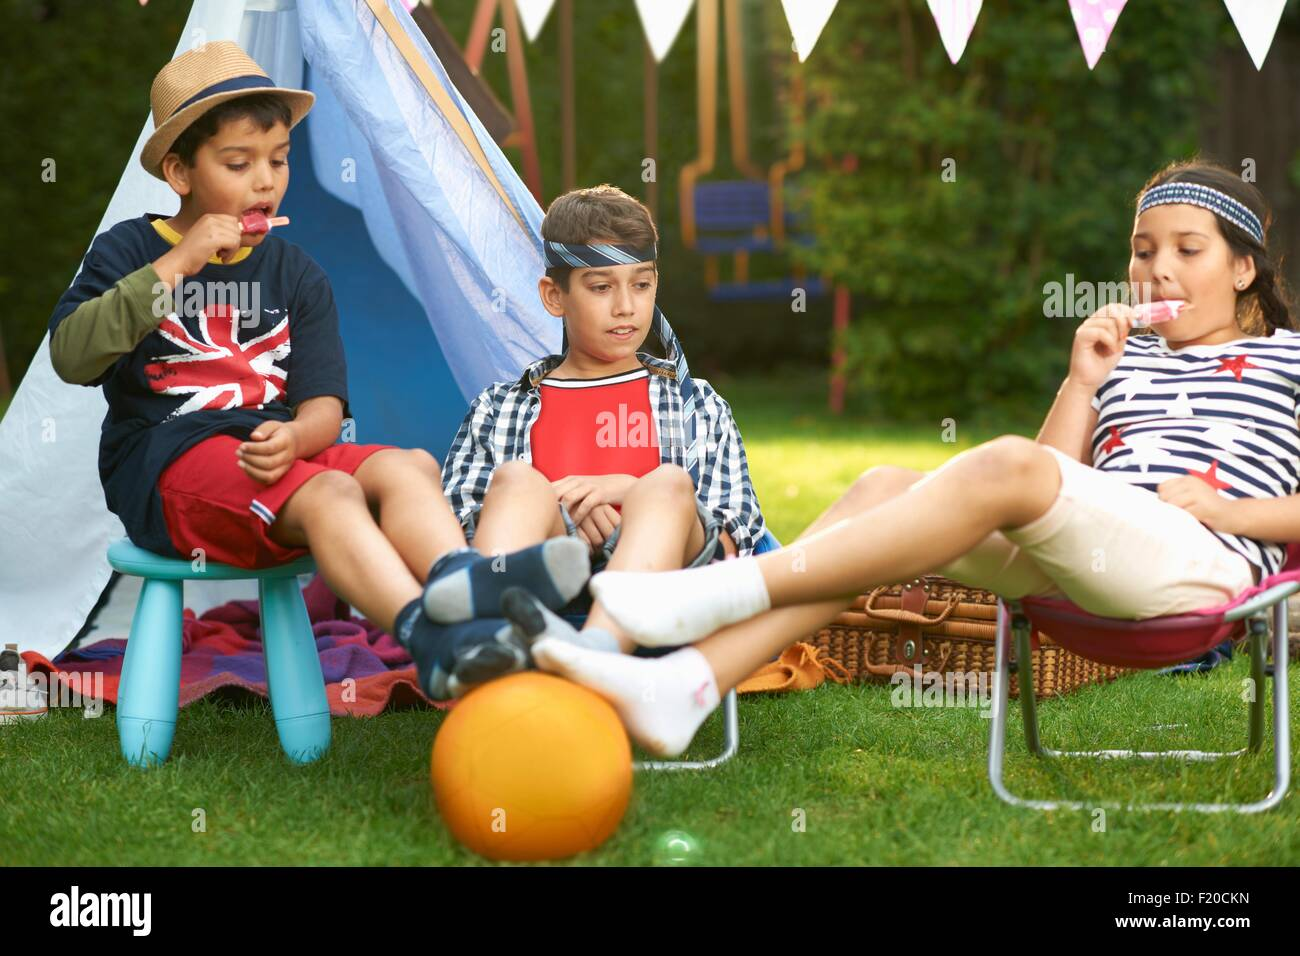 Girl and brothers eating ice lollies in front of homemade tent in garden Stock Photo